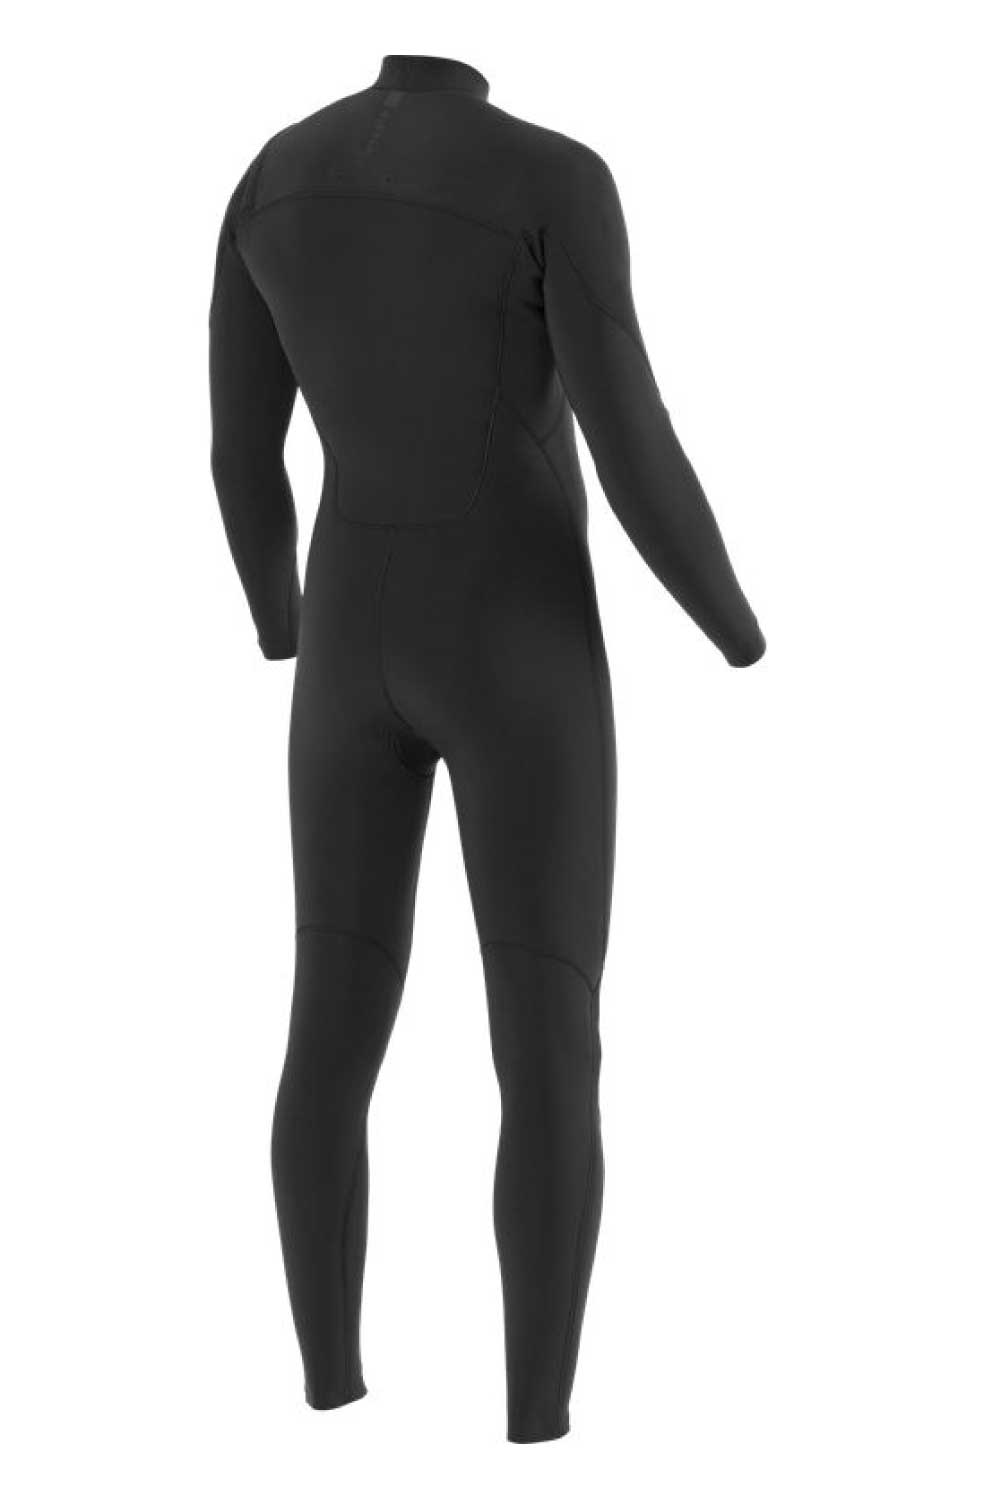 Vissla 7 Seas 3/2mm Full Suit Steamer Black